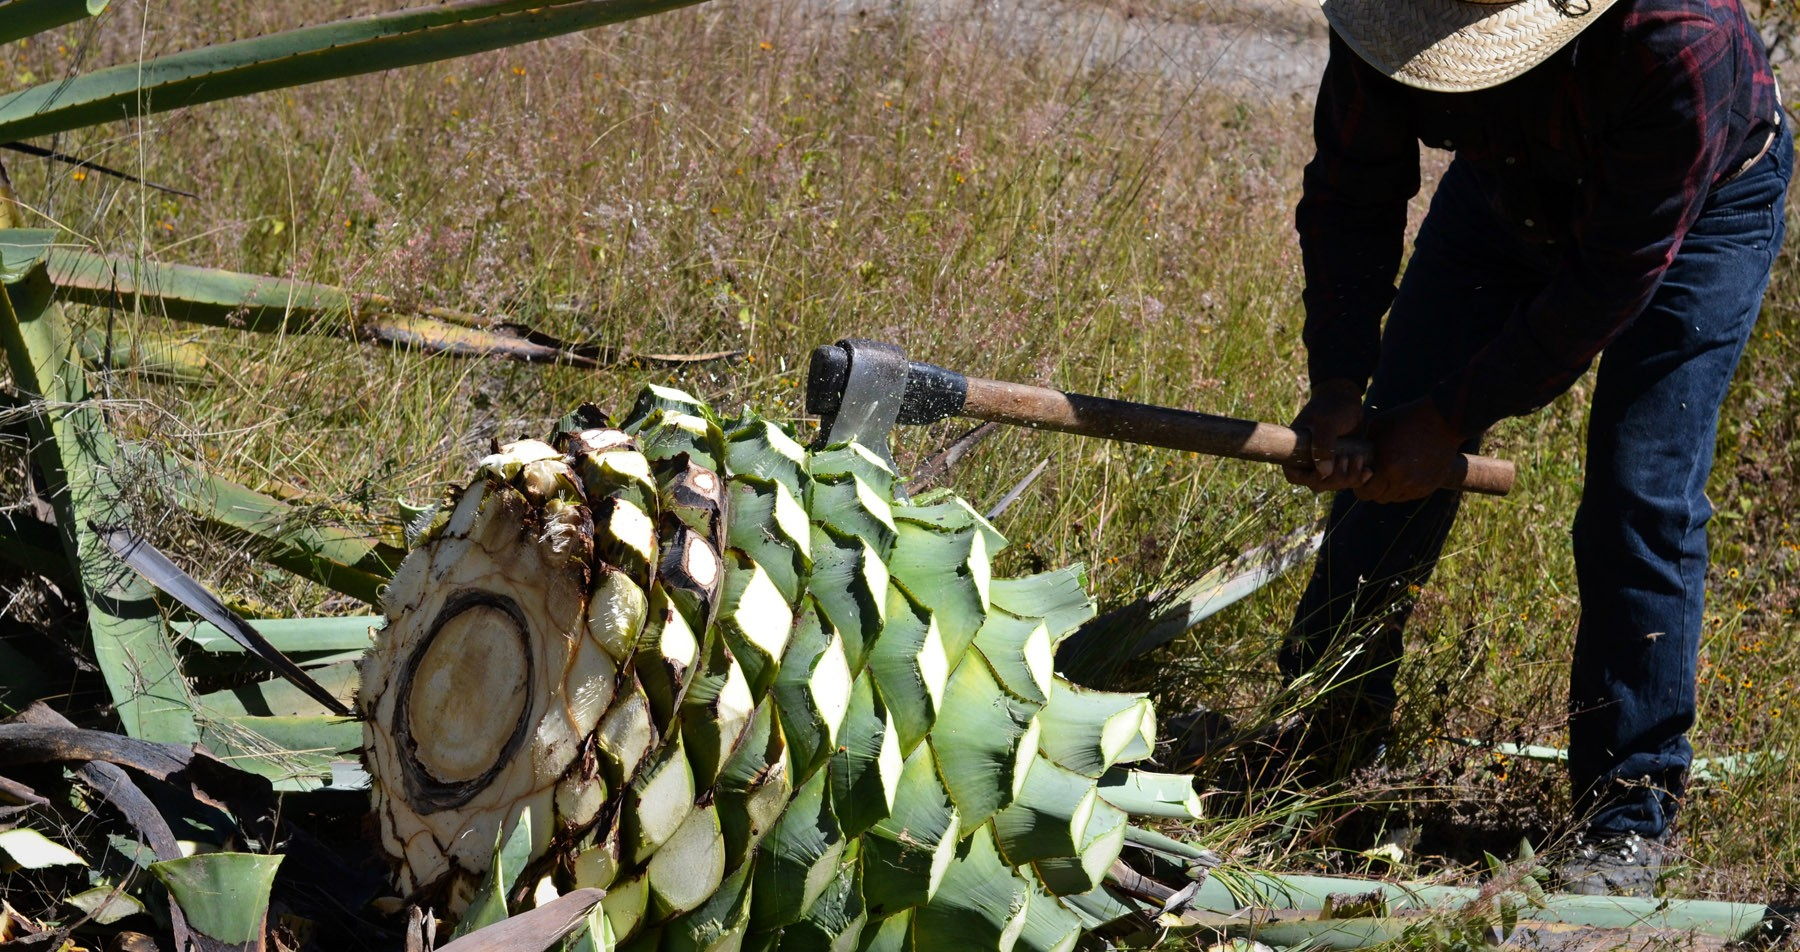 the-agave-juices-rupture-from-the-agaves-cabeza